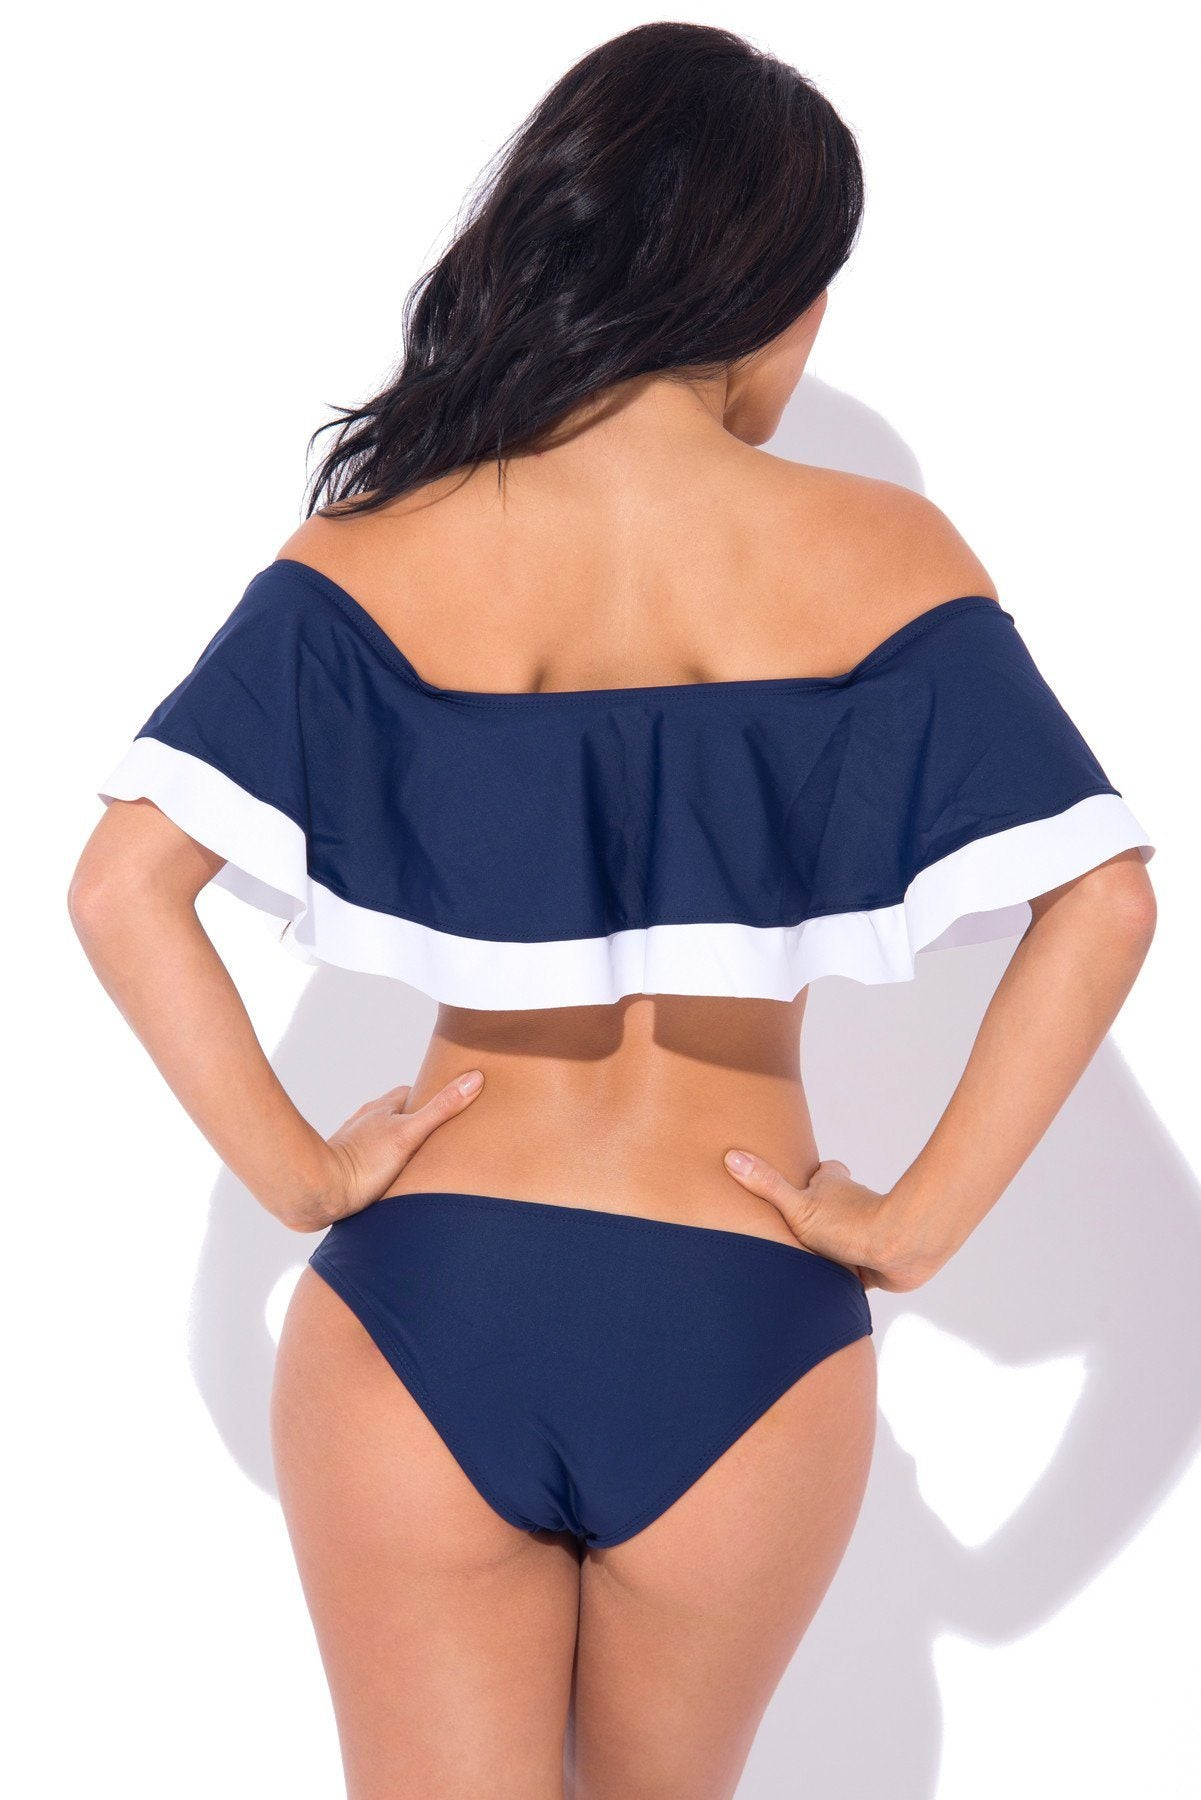 Cayman Islands Two Piece Swimsuit NAVY